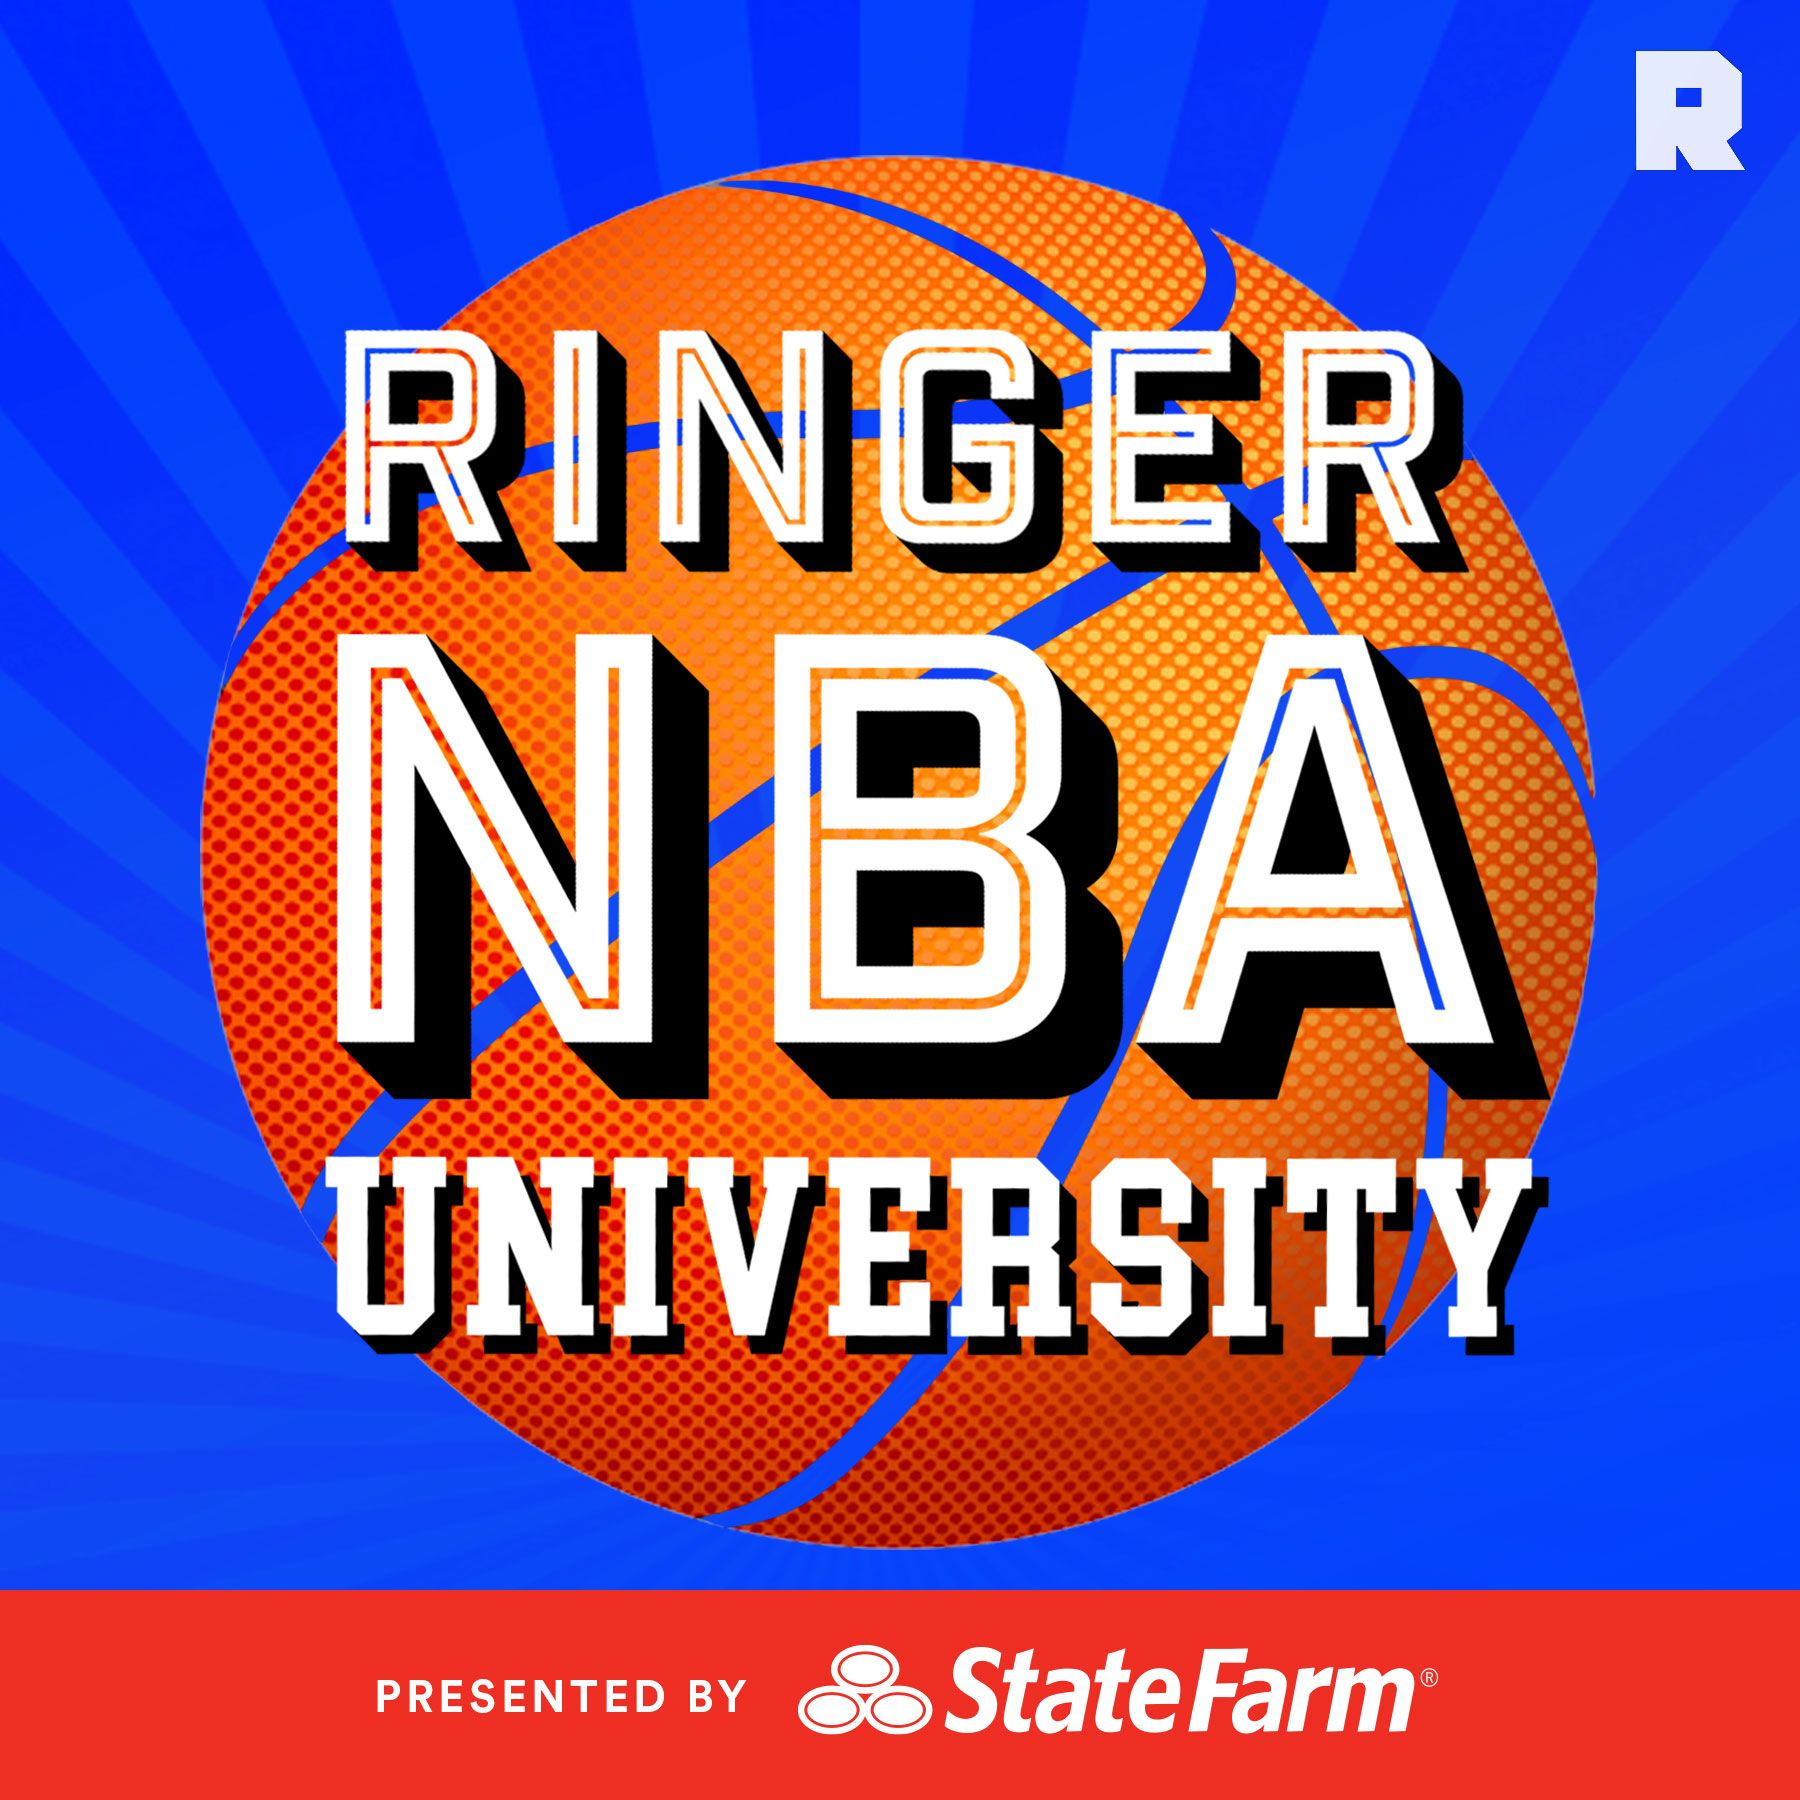 The Bulls' and Timberwolves' Young Cores and First-Time All-Stars   Ringer NBA University